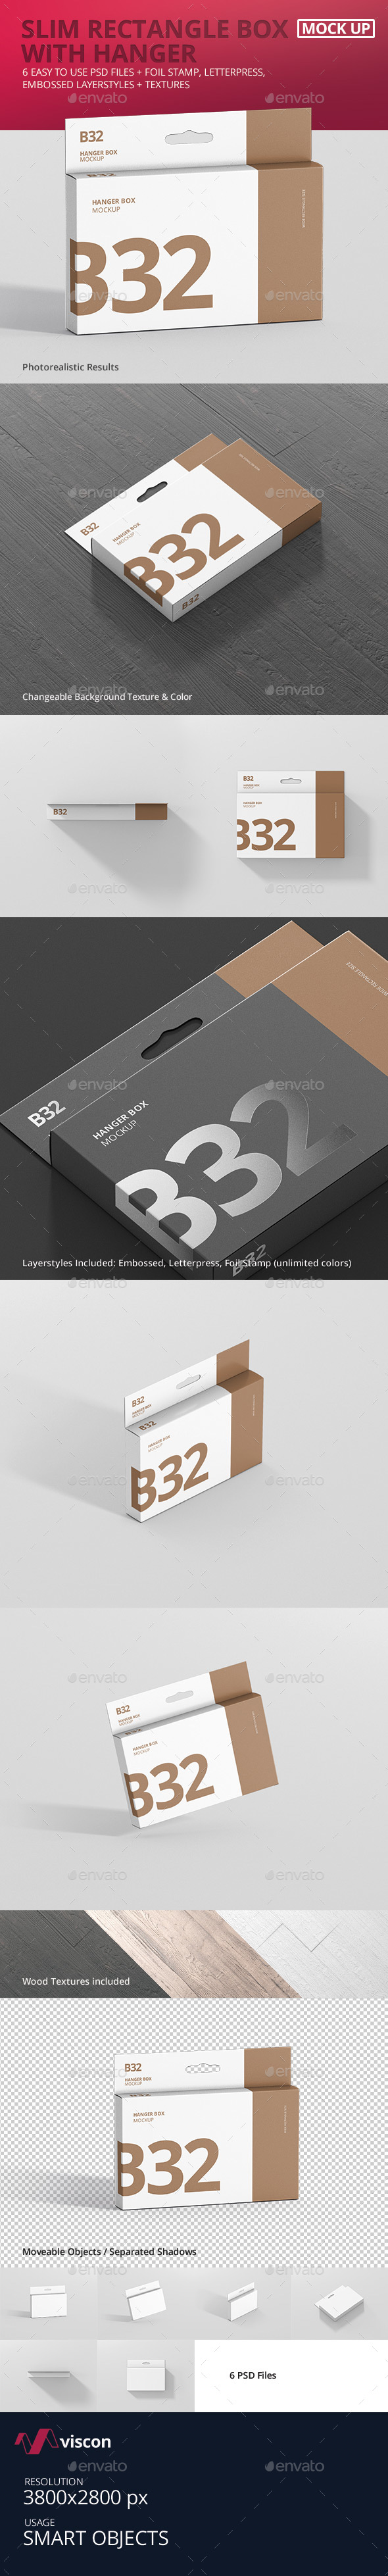 Box Mockup - Wide Slim Rectangle Size with Hanger - Miscellaneous Packaging